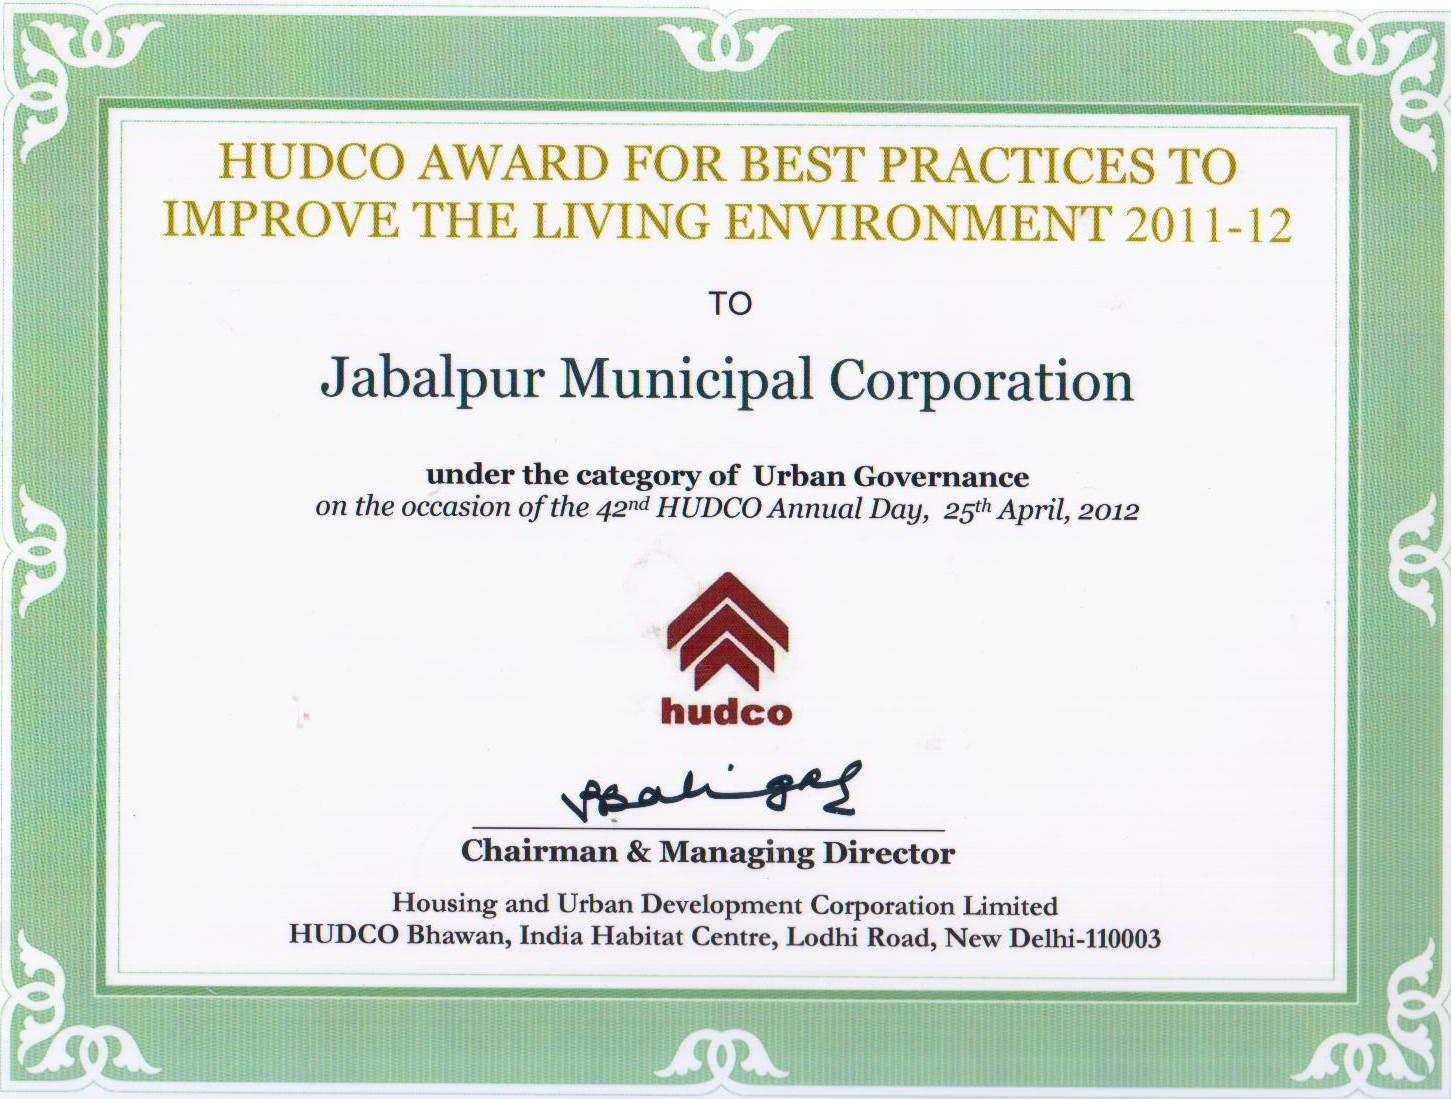 Hudco Award For Best Practices